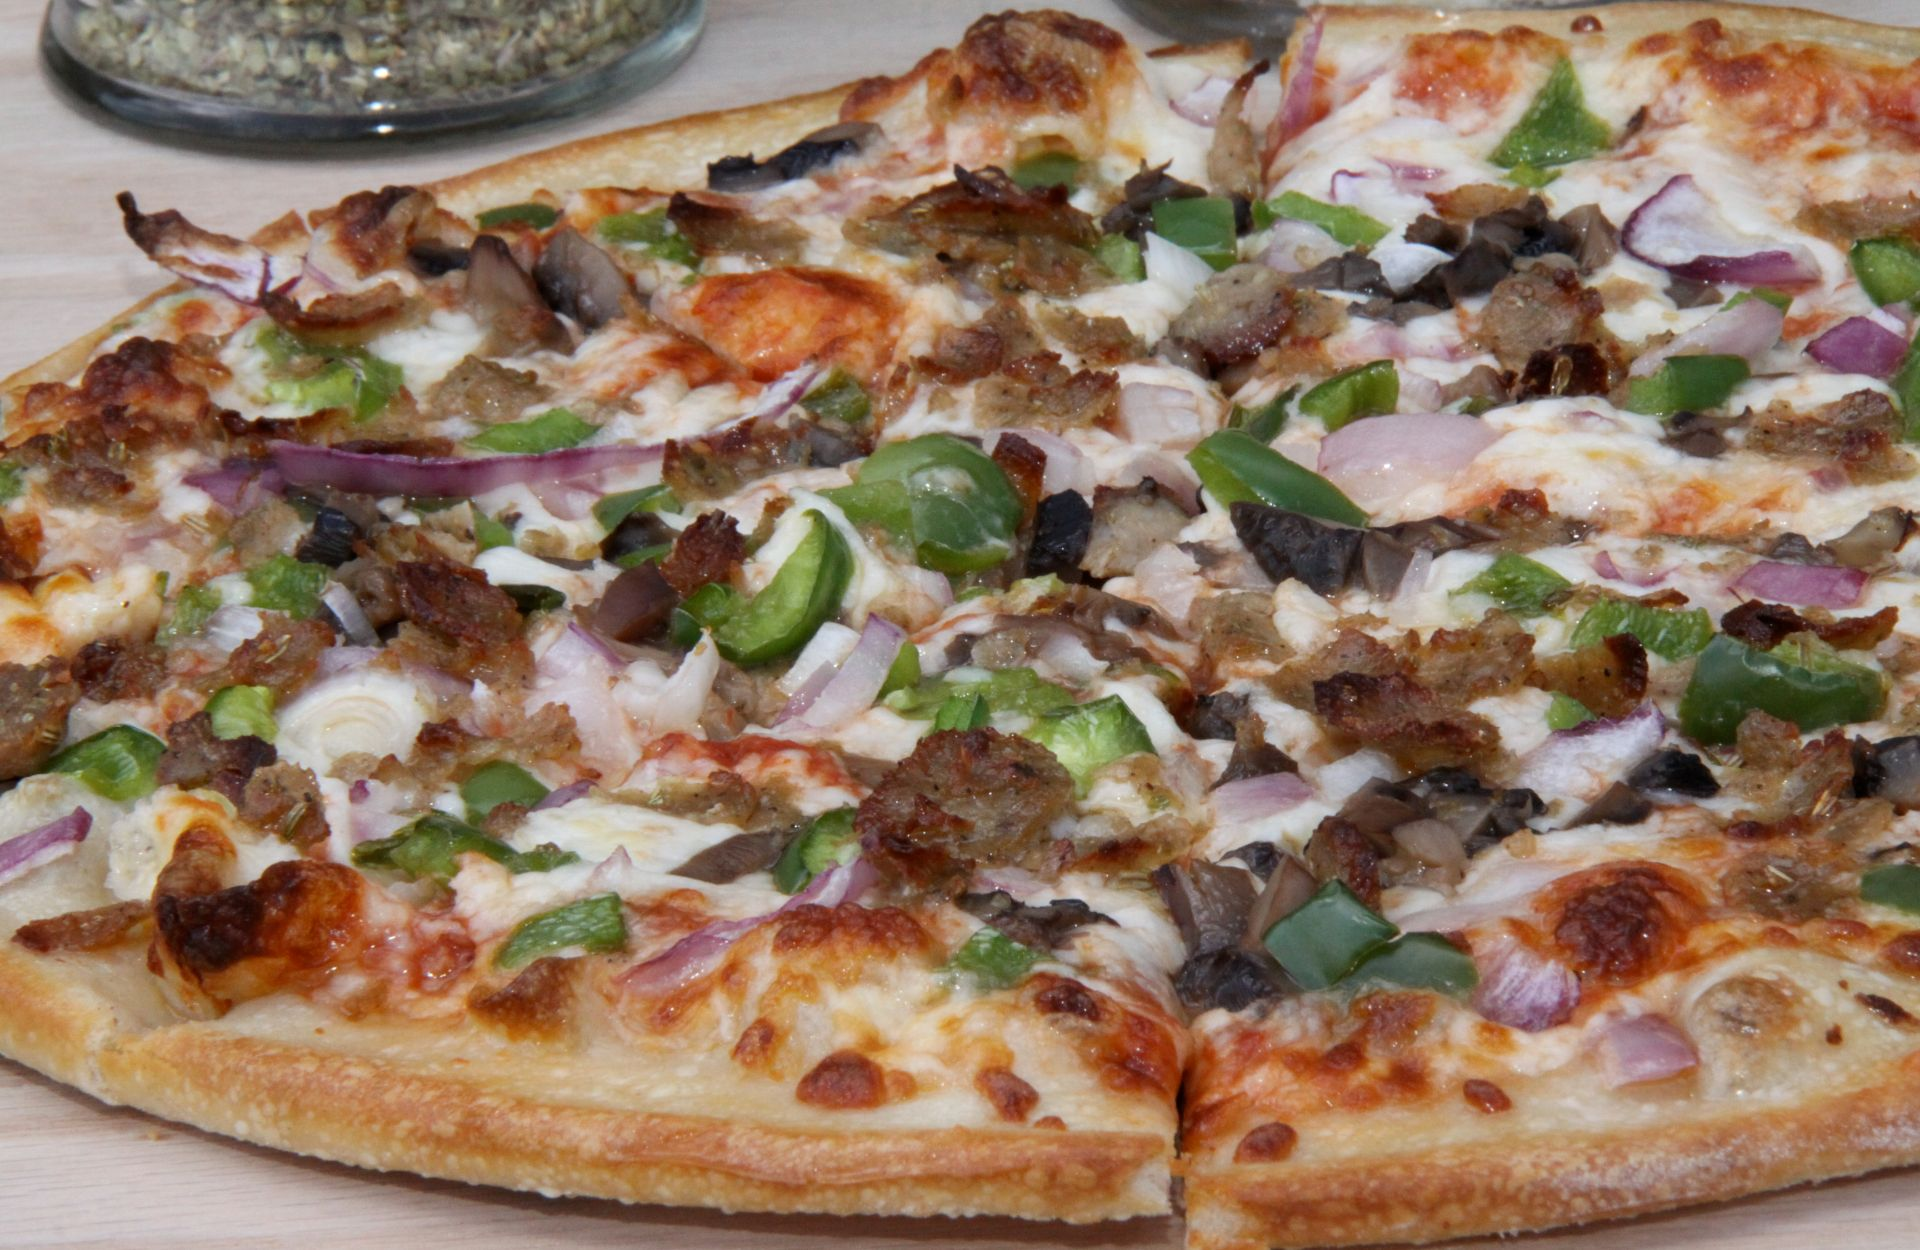 Thin crust supreme pizza with sausage, green peppers, onion and cheese